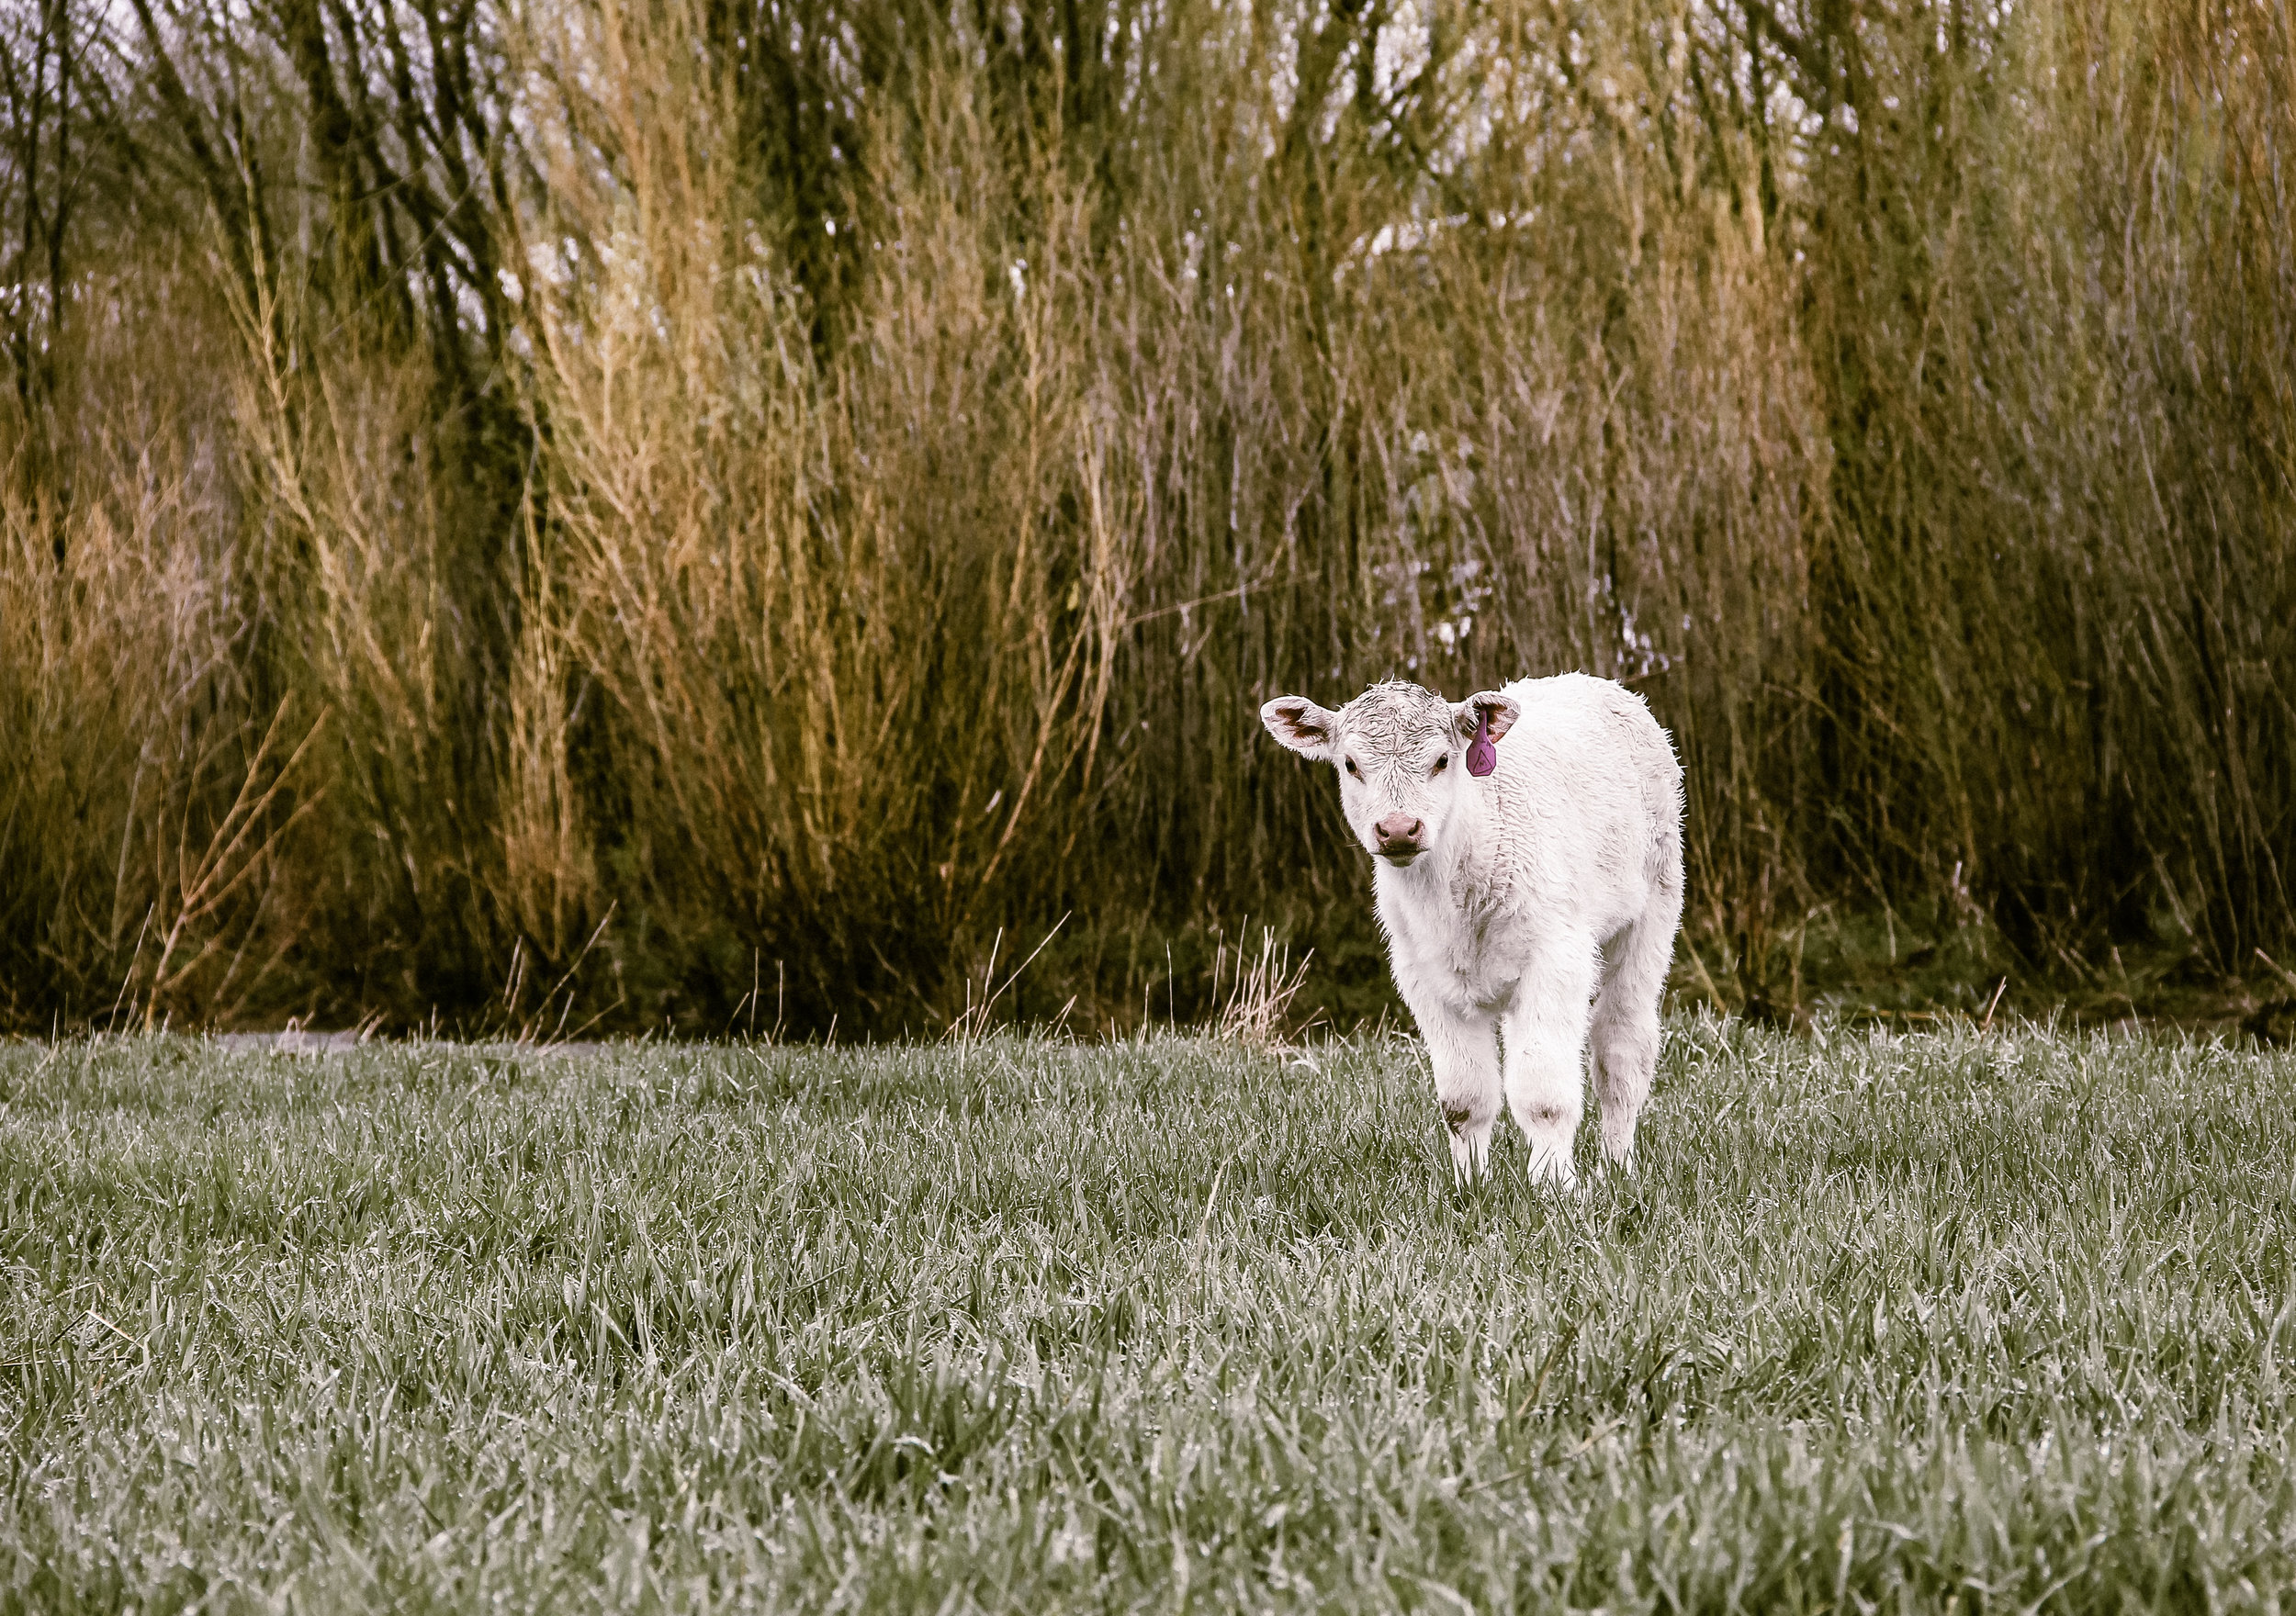 Our baby calf, Wild Child